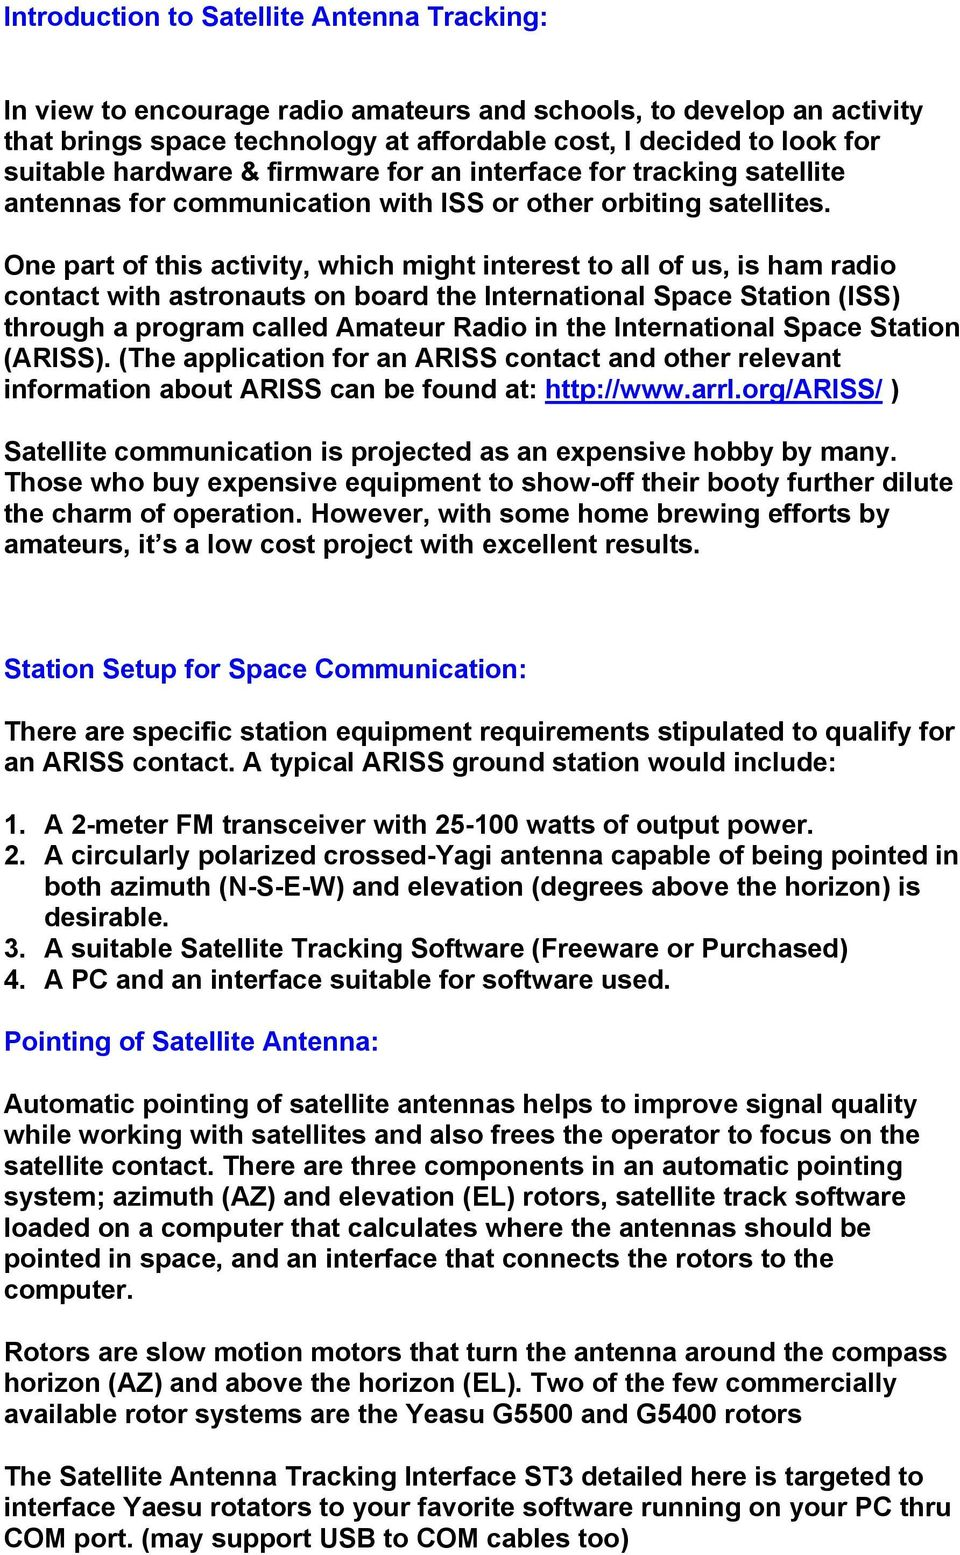 Tech Info Document: PIC16F84A LCD Satellite Antenna Tracking